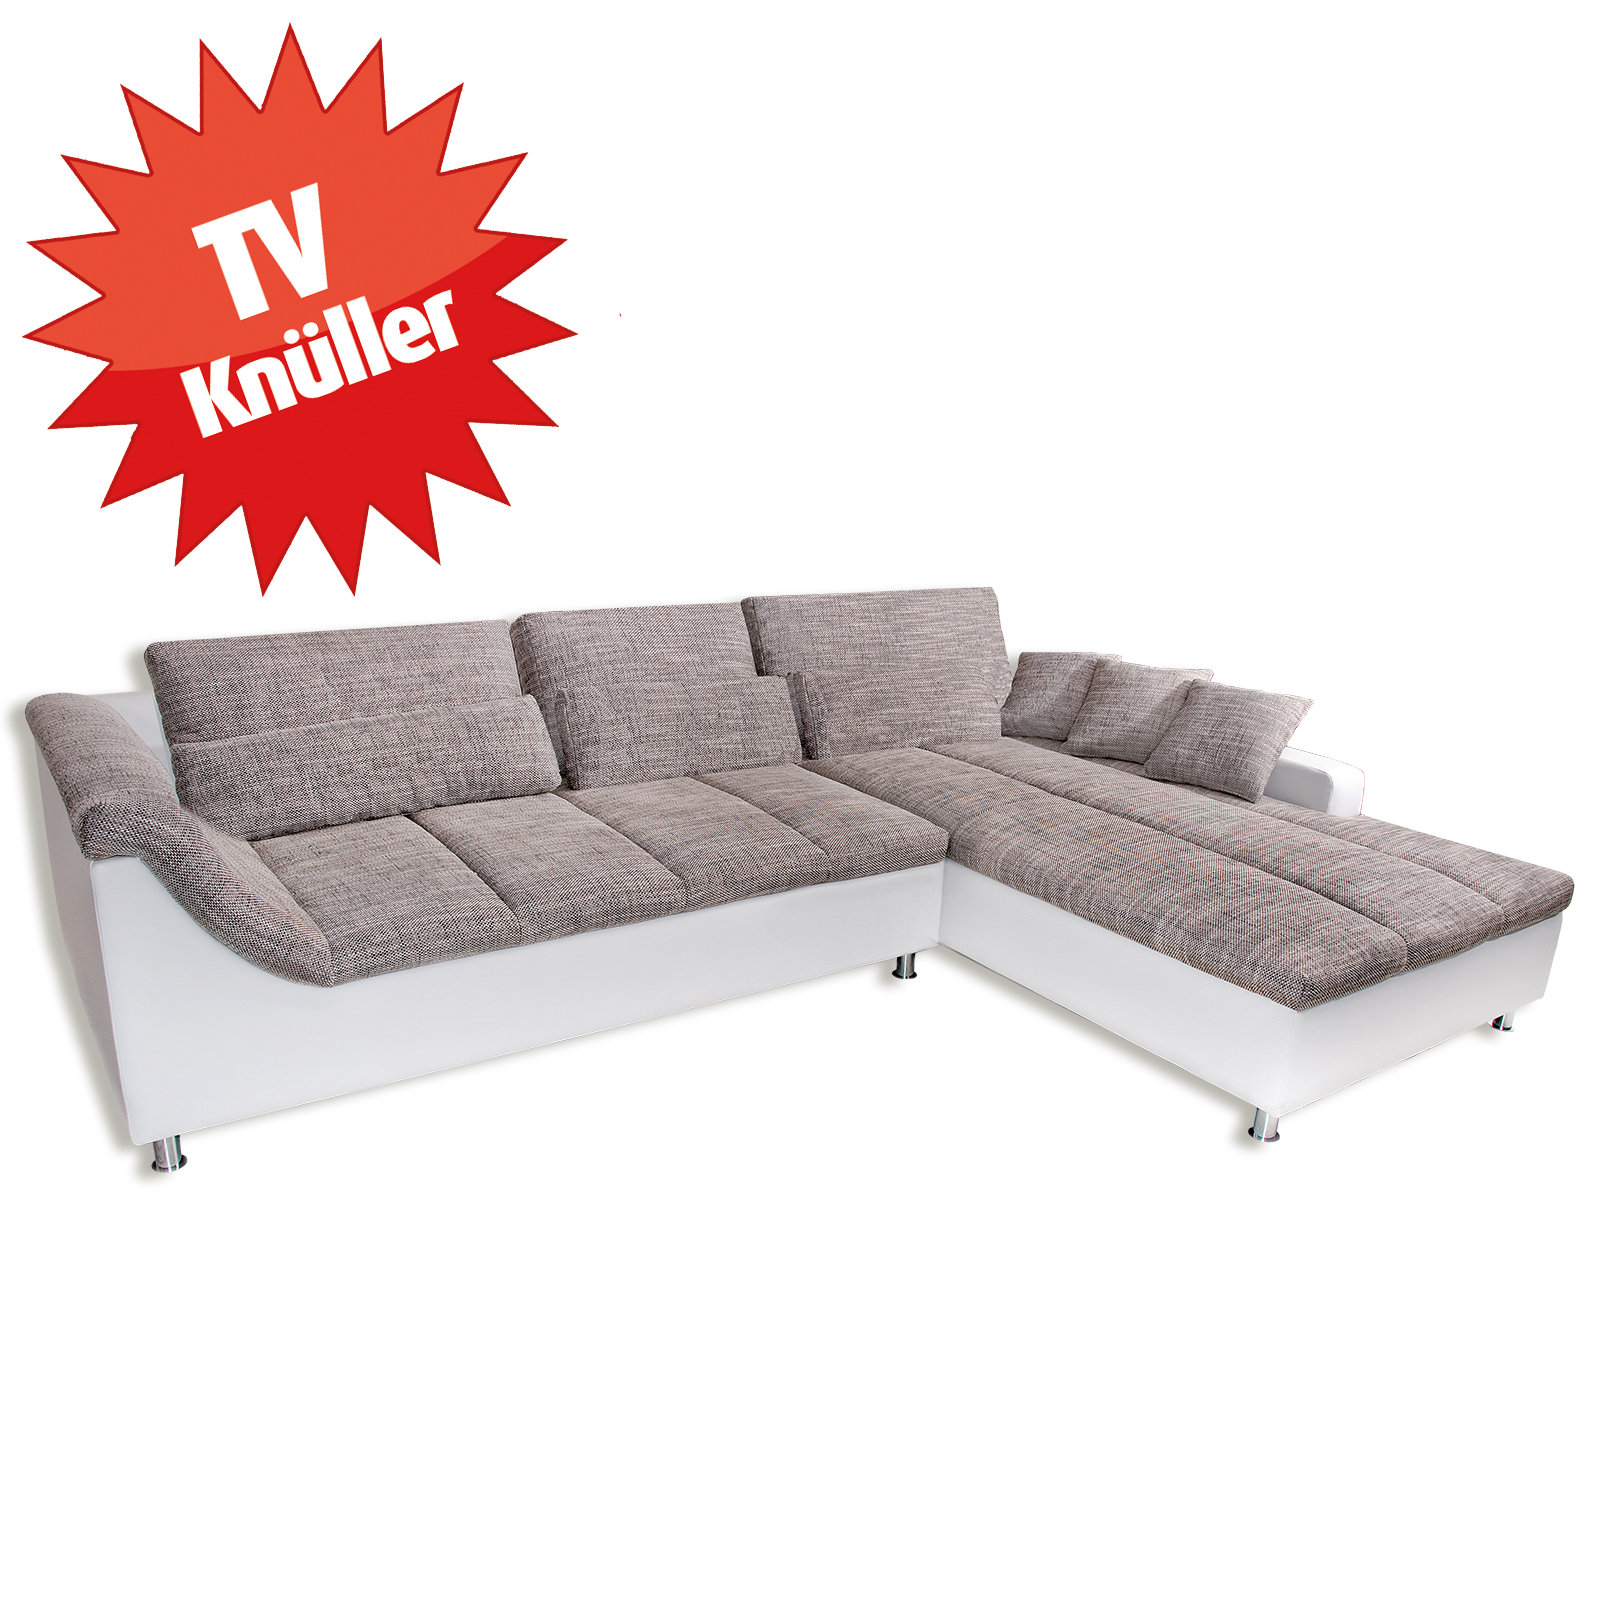 hochwertiges kunstleder sofa nur 499 99 cherry m bel roller. Black Bedroom Furniture Sets. Home Design Ideas